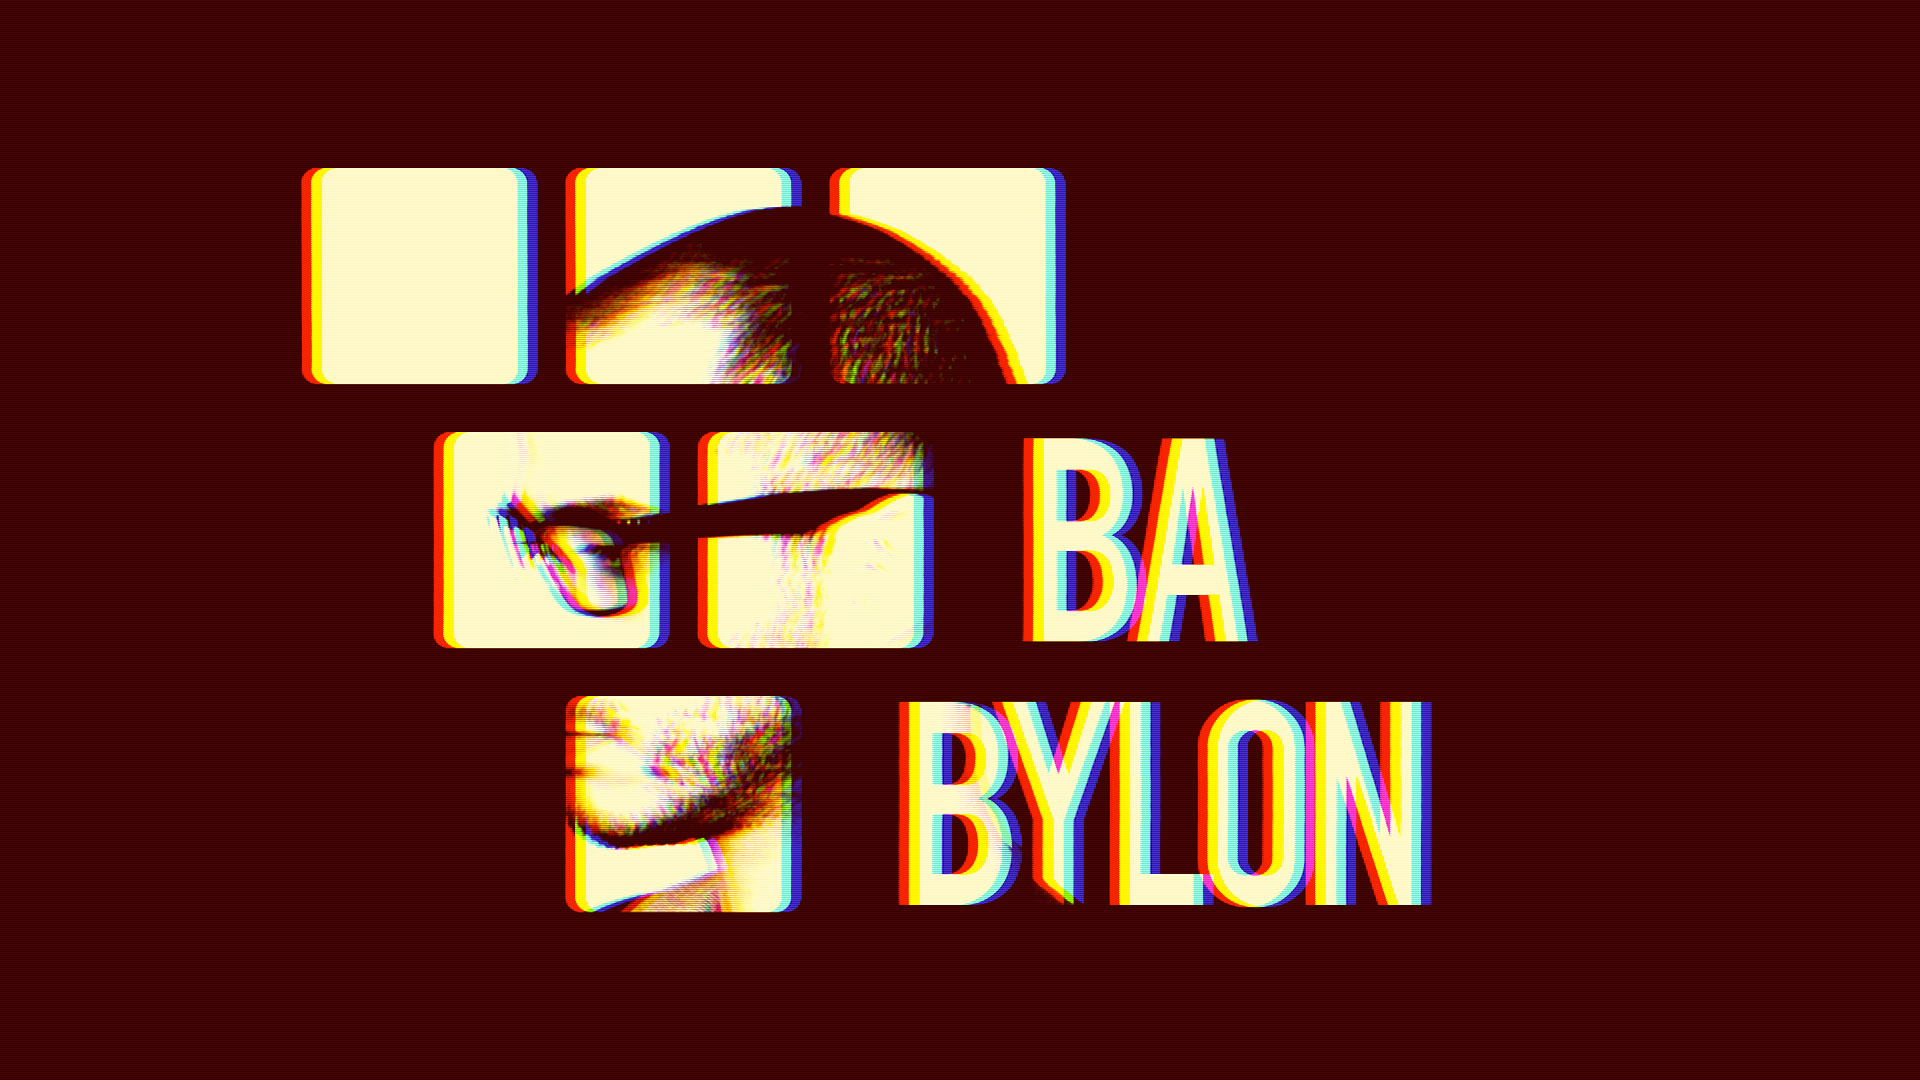 Video: Babylon